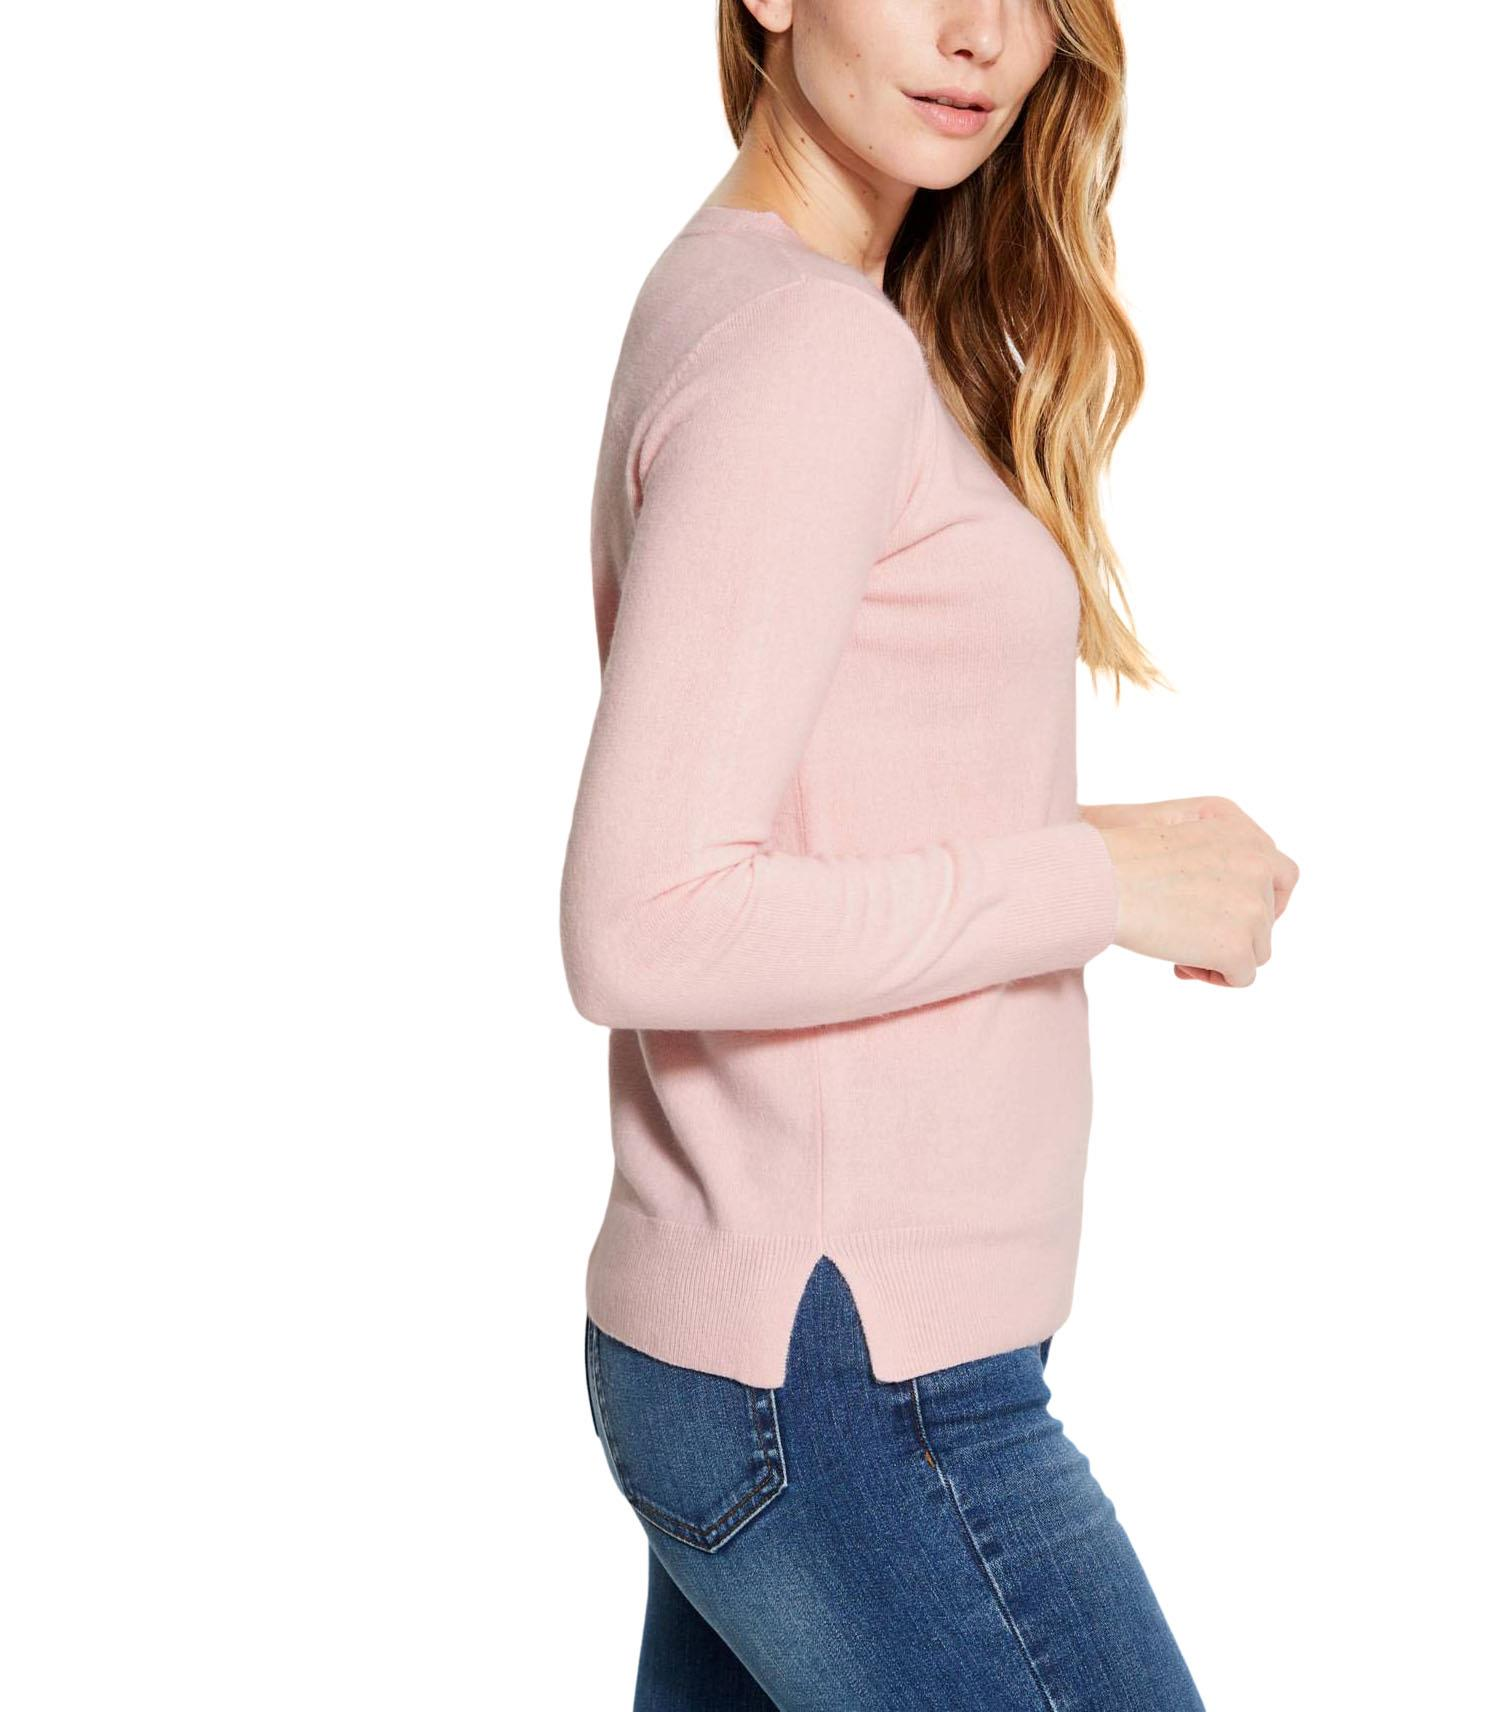 NEW-Ex-M-amp-S-Ladies-Super-Soft-Lightweight-Round-Neck-Summer-Jumper-Size-6-18 thumbnail 15